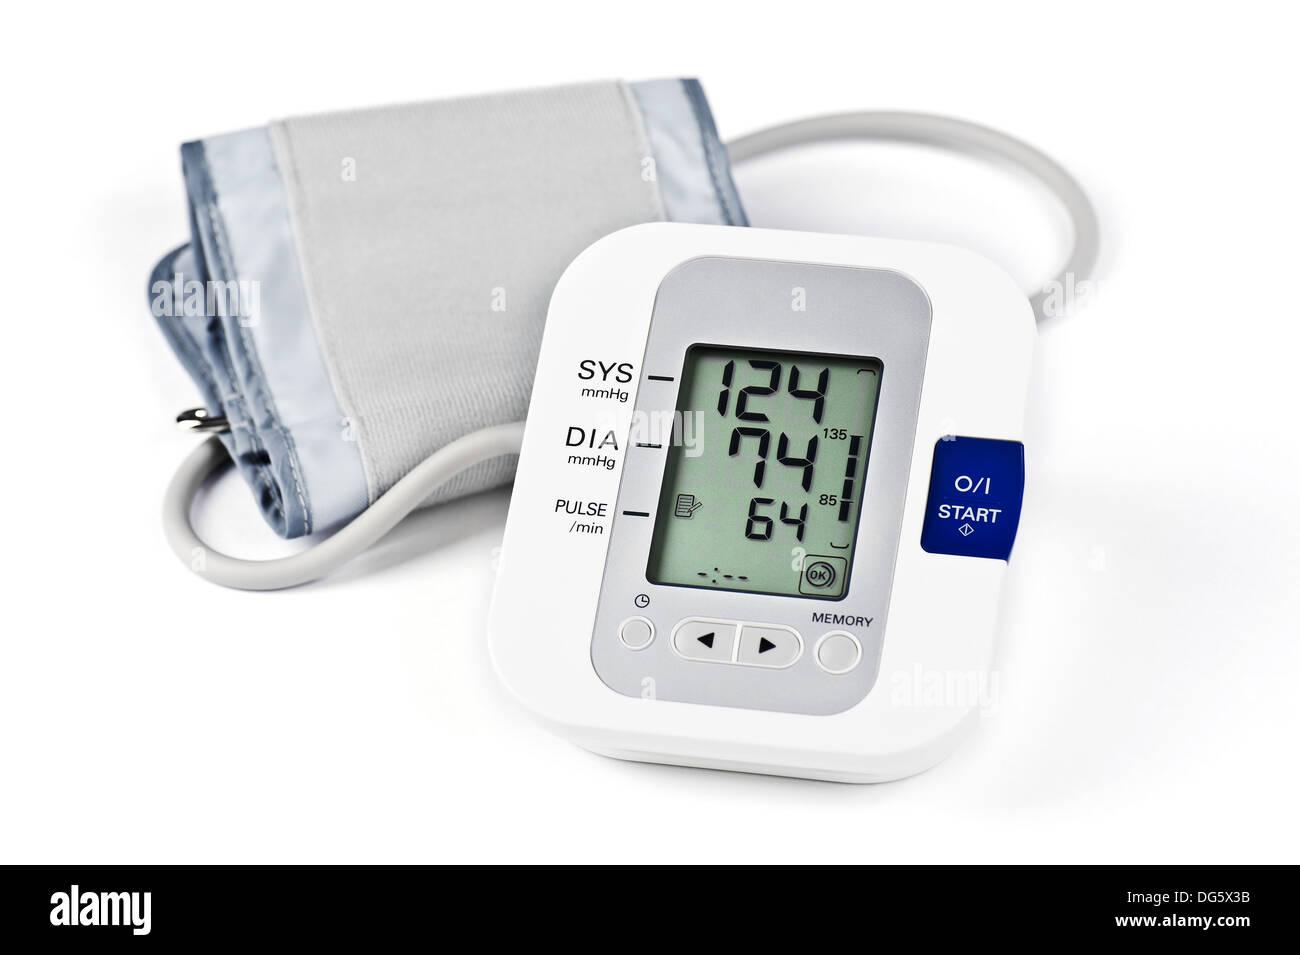 Digital Blood Pressure Monitor on white background - Stock Image